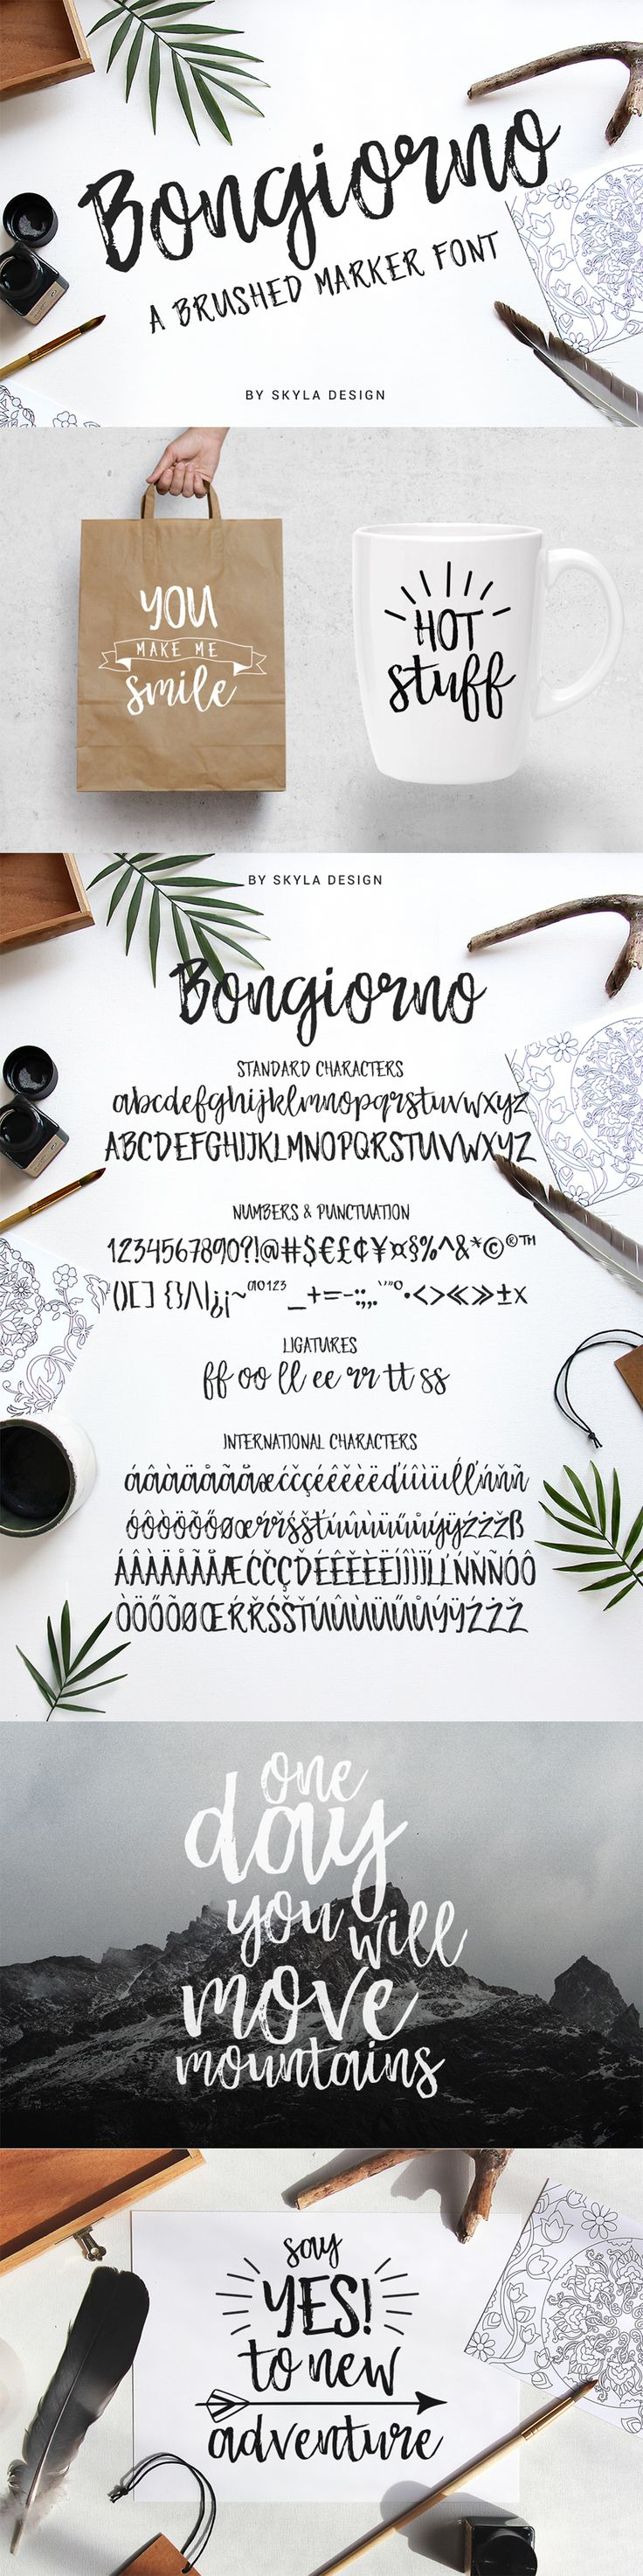 Bongiorno is a brushed marker script with a rough edge and loads of texture for a brushed look. This font is perfect for using in ink, brushed designs and works great for display headers, invitations, posters, T-shirts, greeting cards and branding materials.